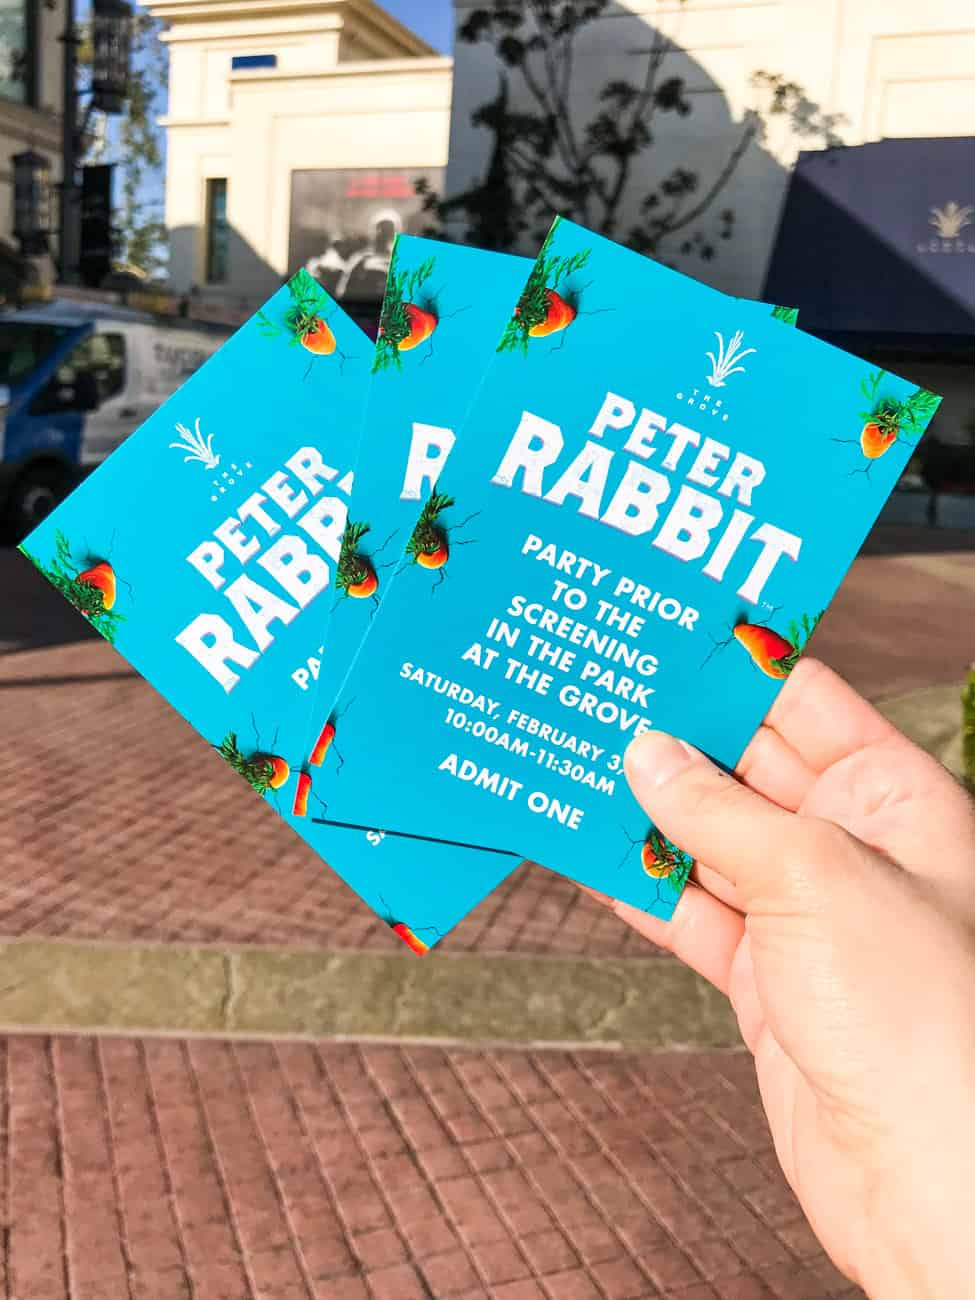 tickets for Peter Rabbit movie premiere